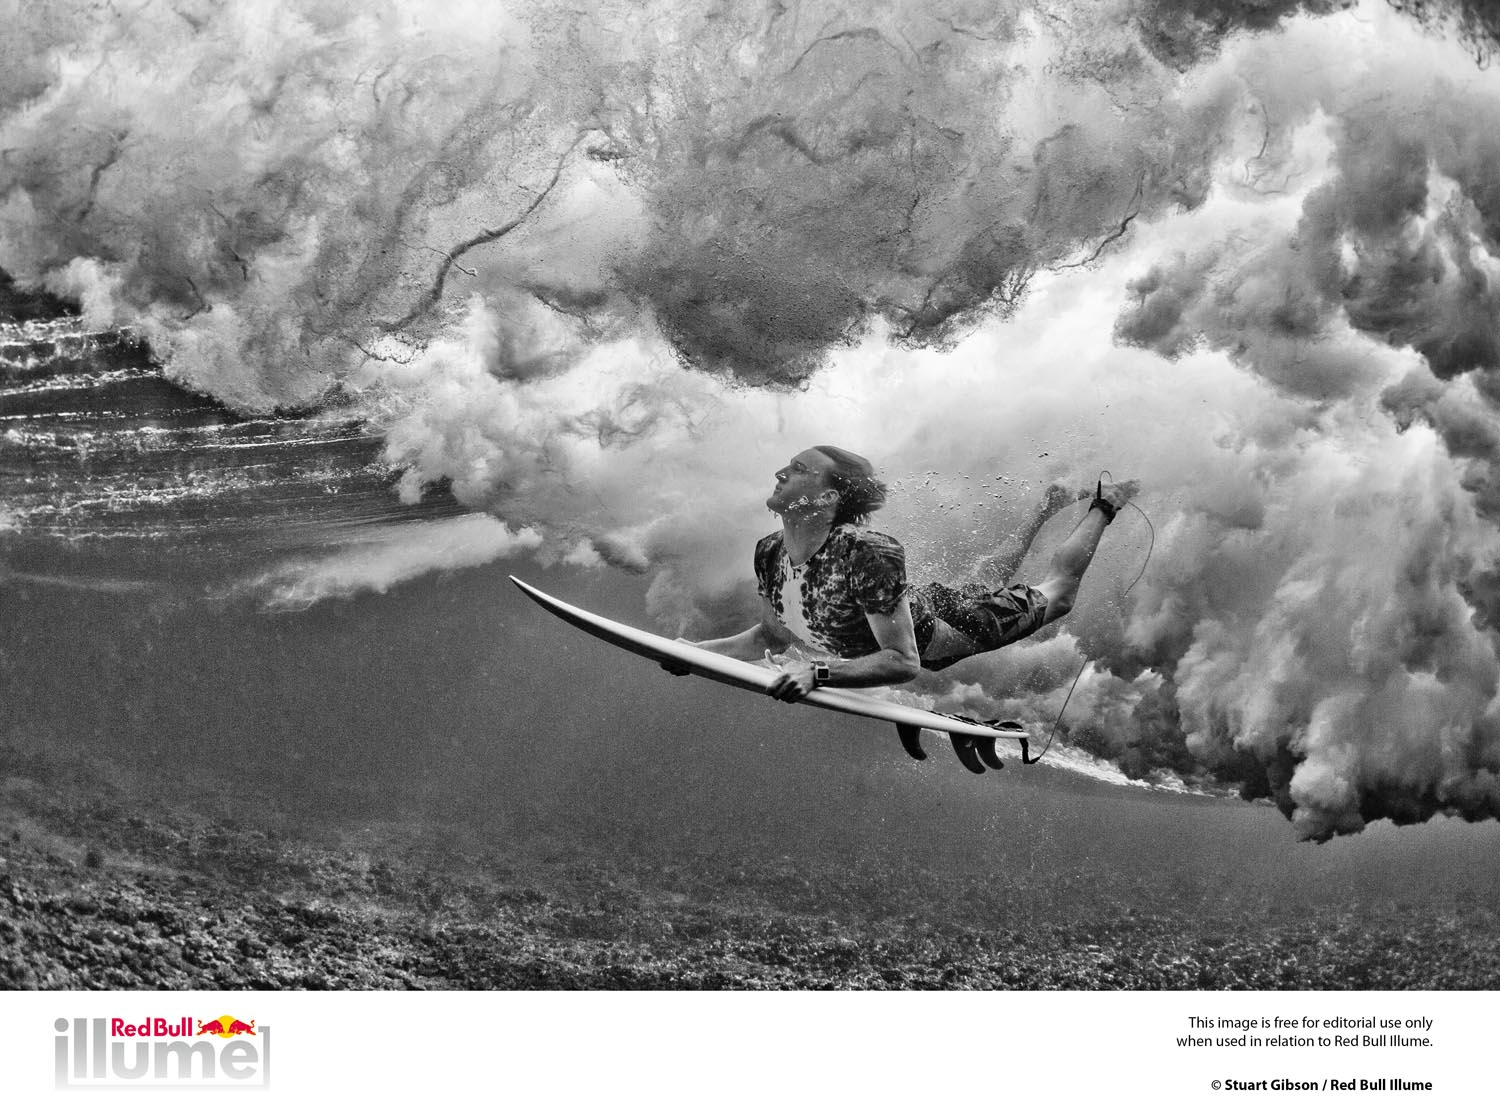 ©Stuart Gibson / 2013 Red Bull Illume Close Up Category Finalist Photo